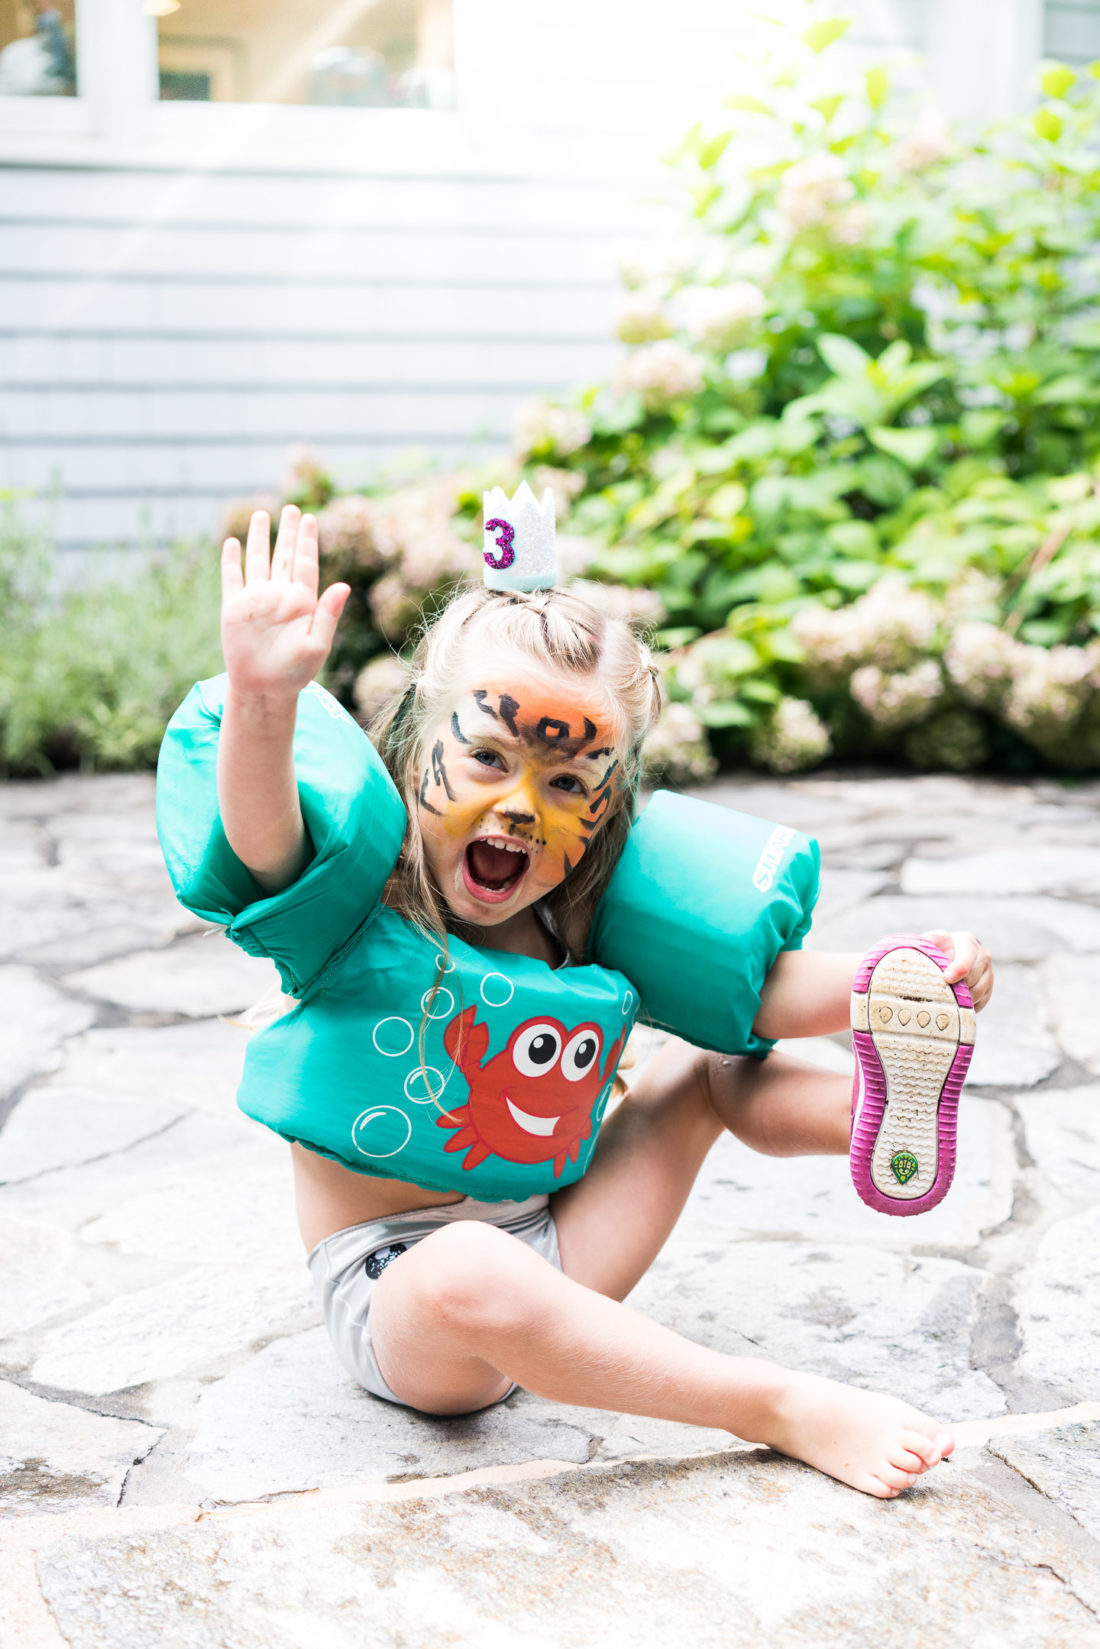 Marlowe Martino wears a birthday crown and tiger face paint at her third birthday party